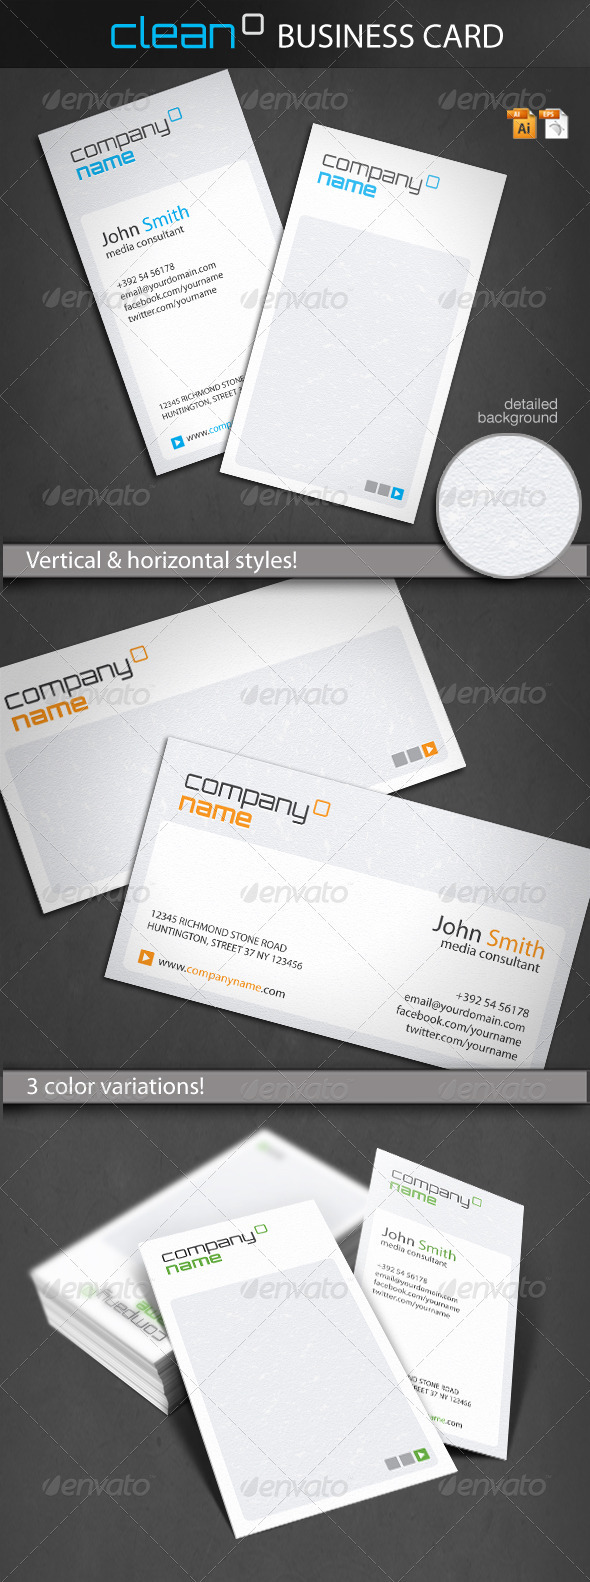 GraphicRiver Clean Business Card 1515917